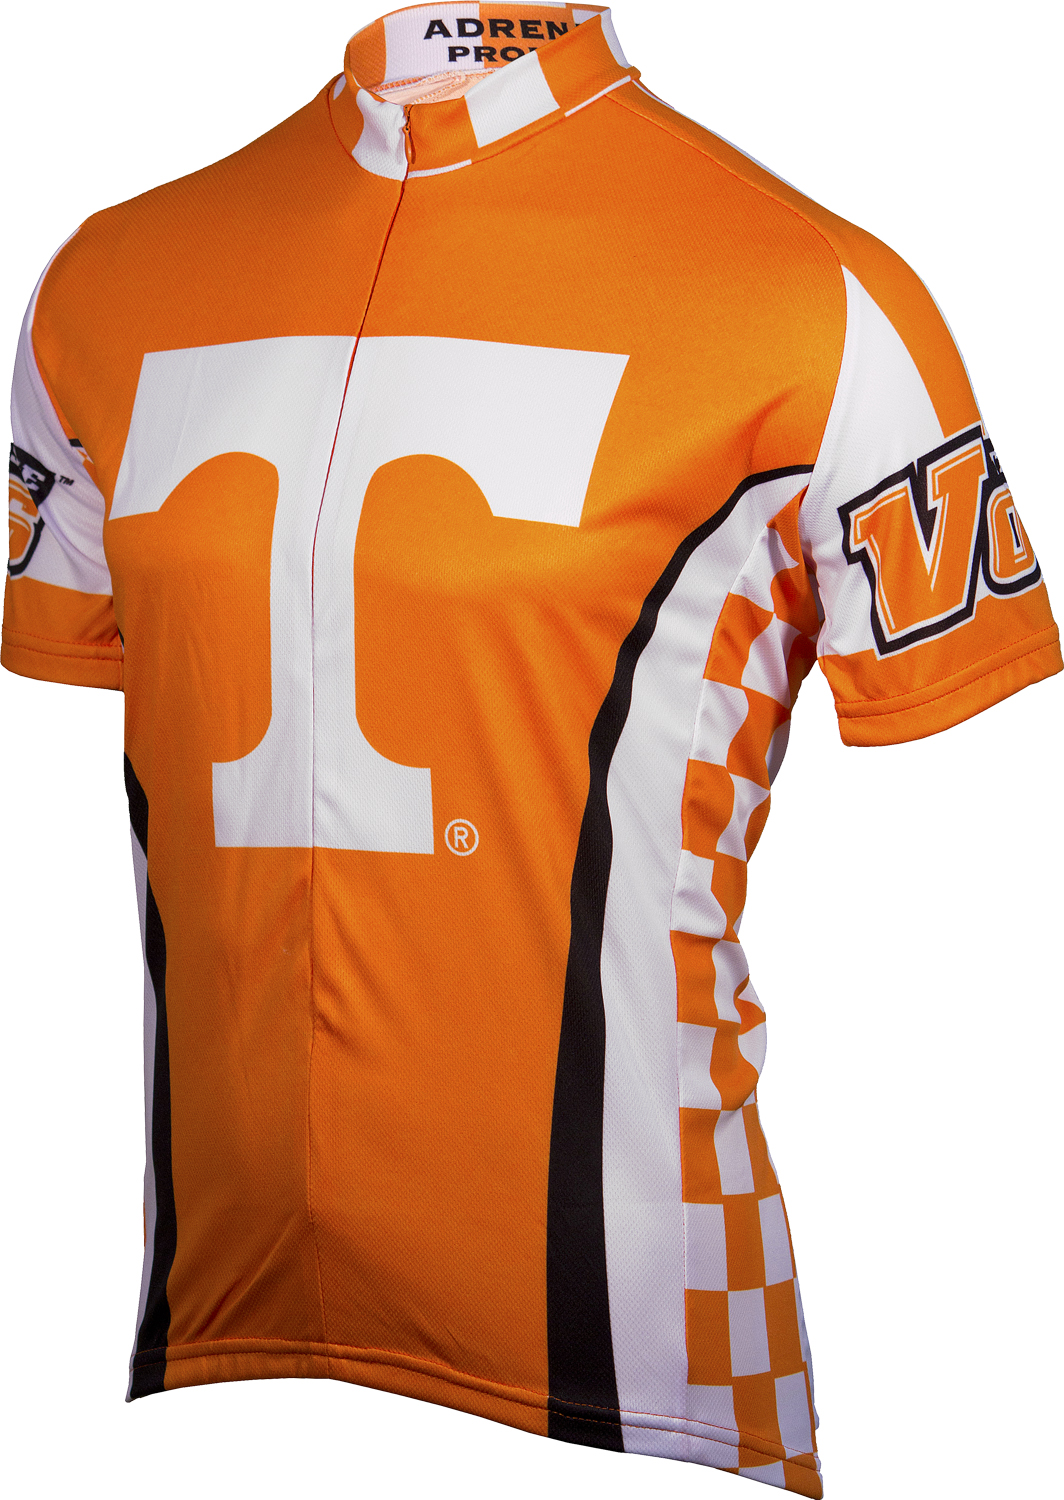 University of Tennessee Volunteers Cycling Jersey